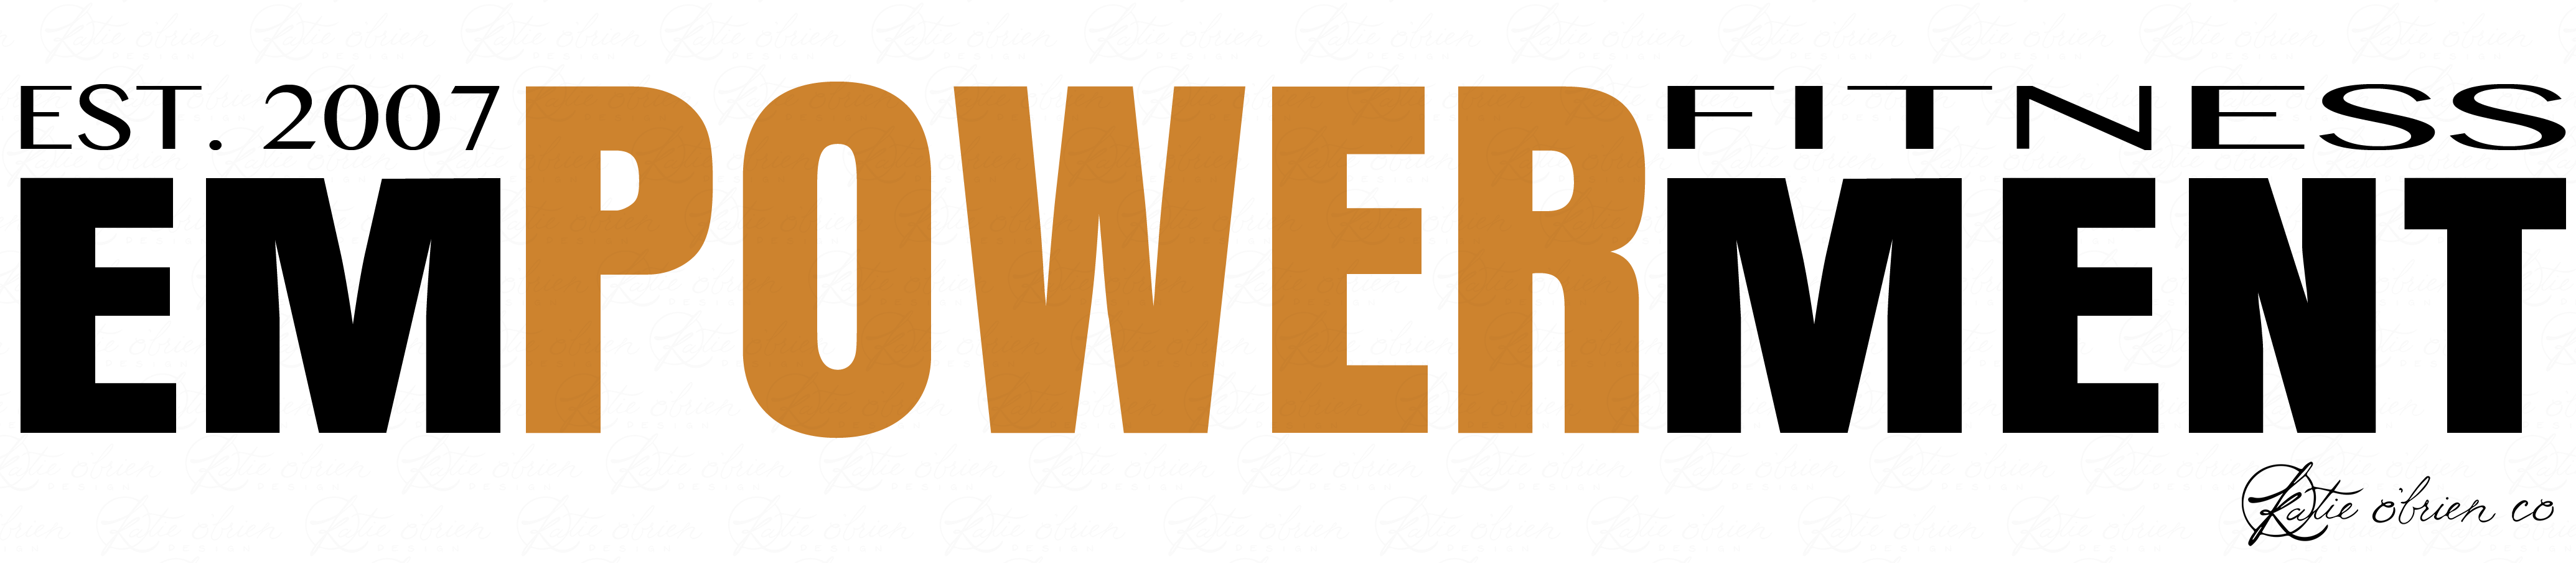 Empowerment Fitness - Primary Logo.png